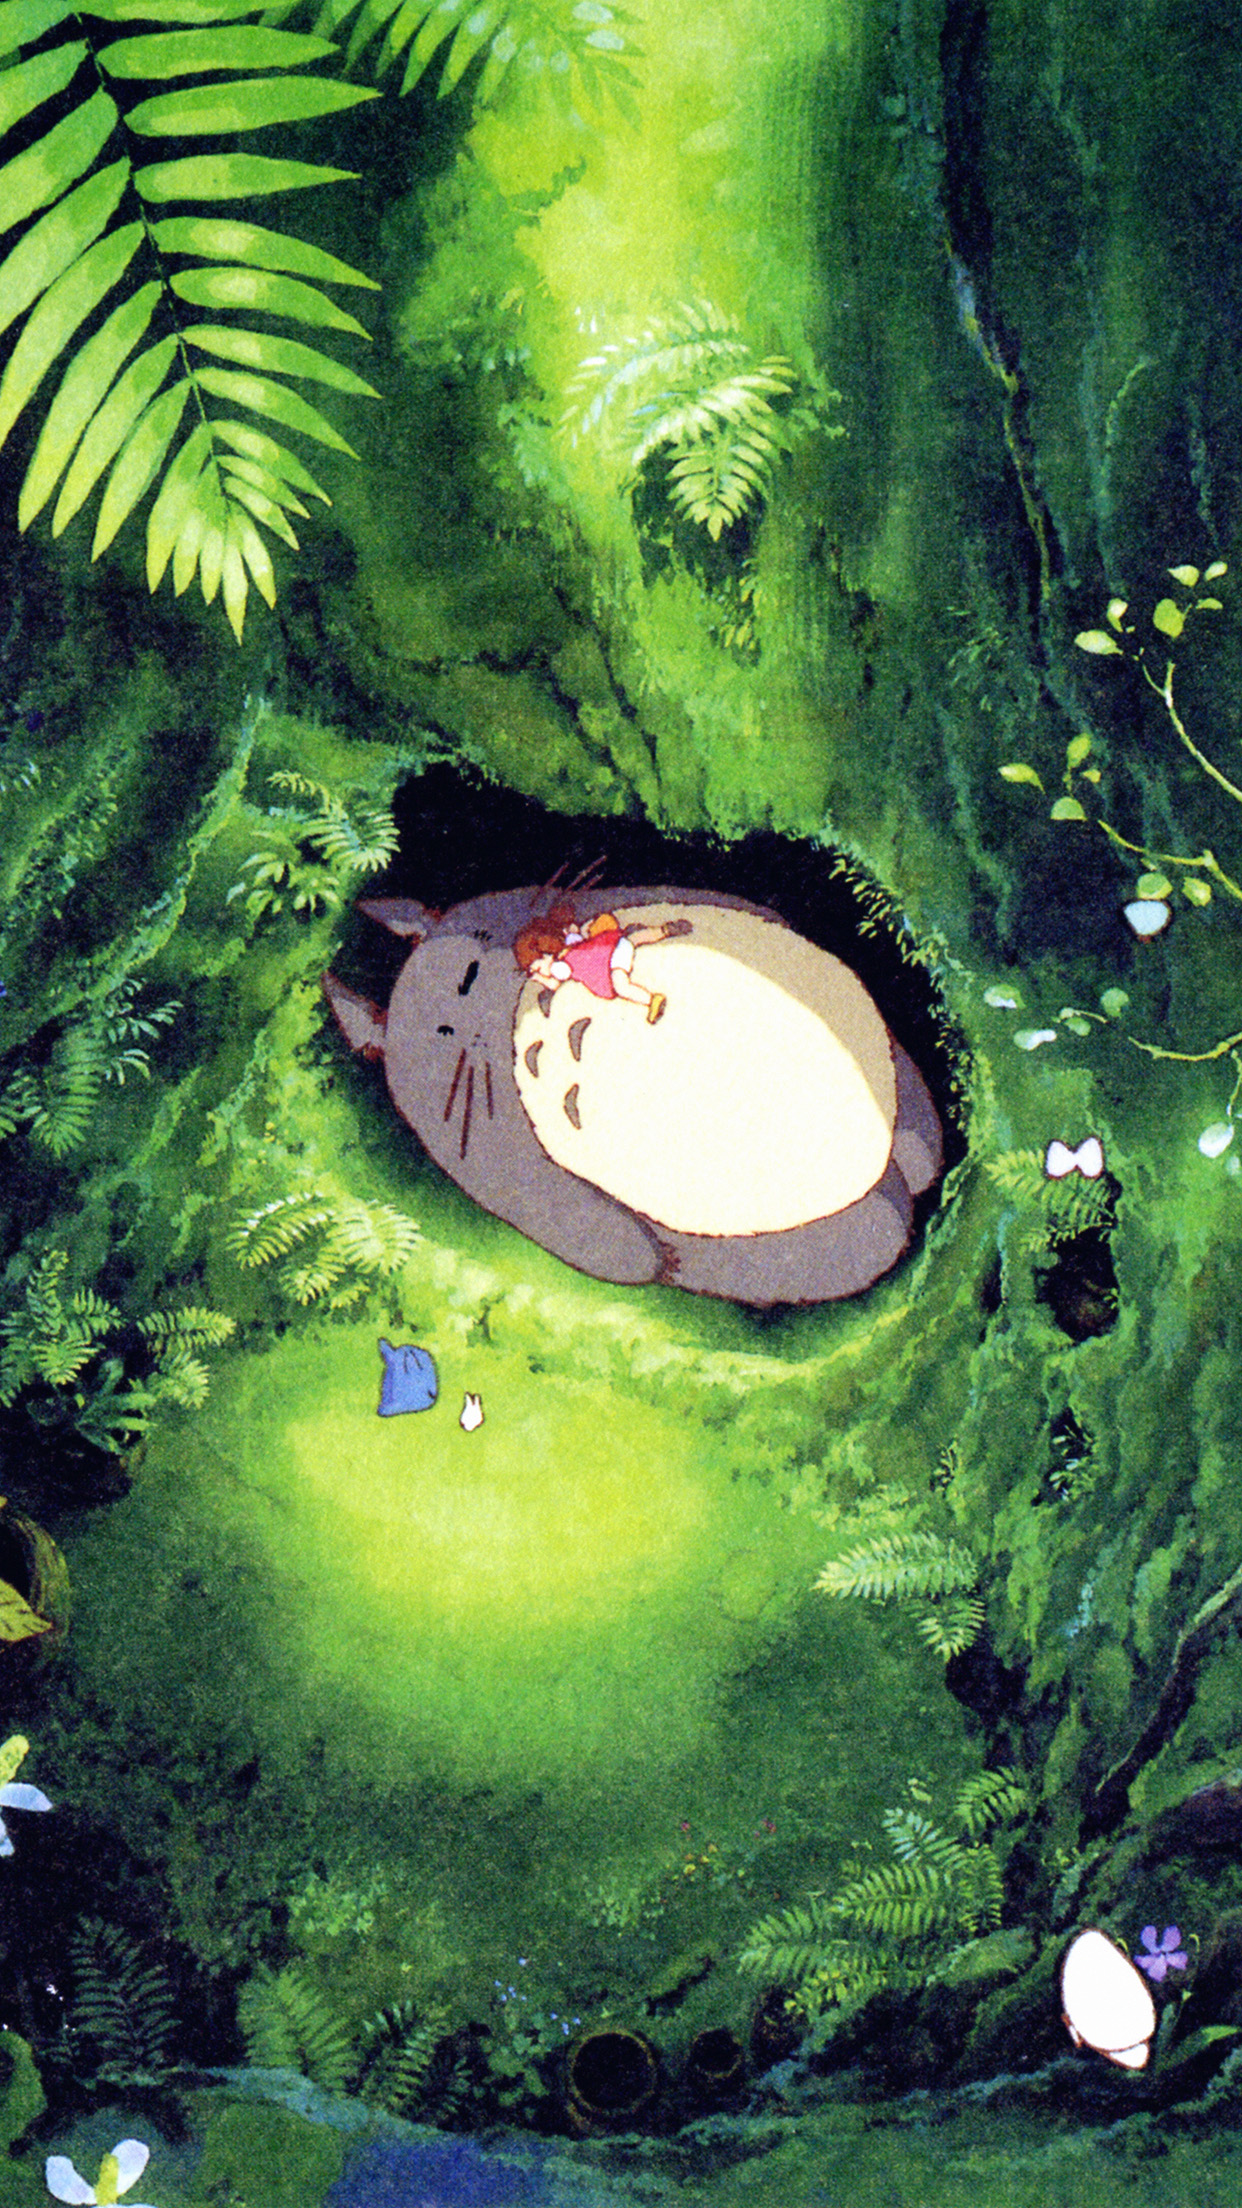 japan totoro art green anime illustration android wallpaper android hd wallpapers